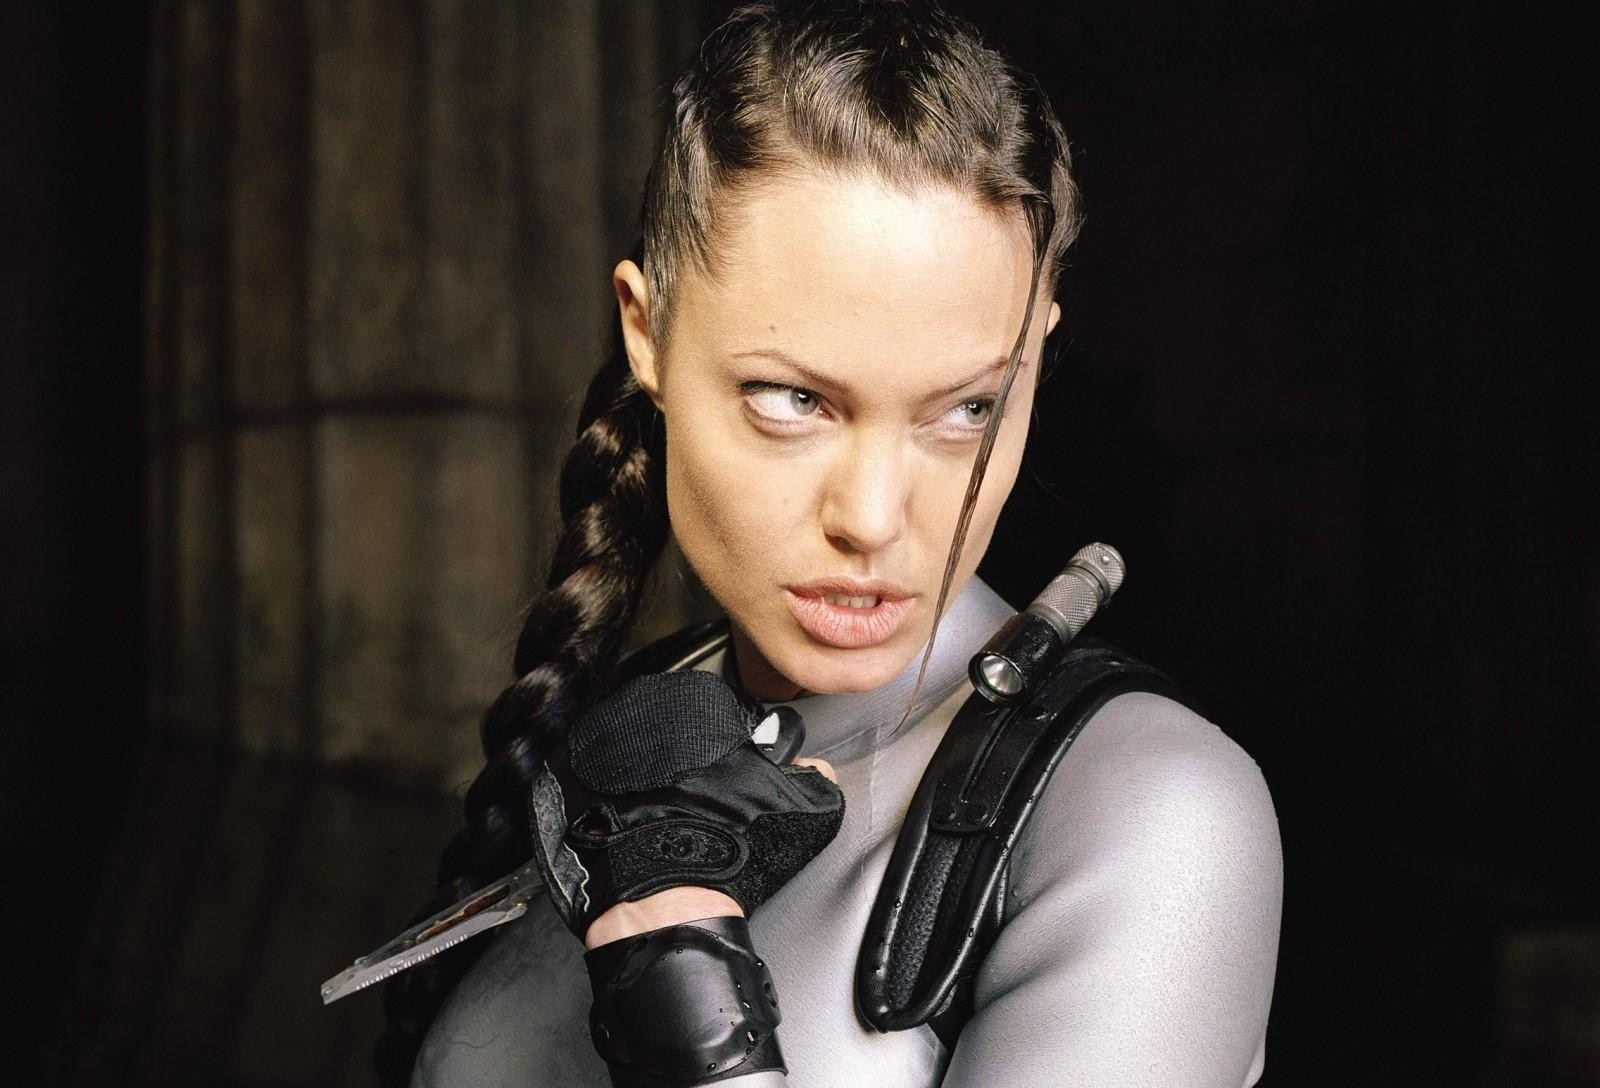 Most Expensive Angelina Jolie Movies  TOP 10 (9) 10.  Lara Croft Tomb Raider The Cradle of Life (2003) - $95 million